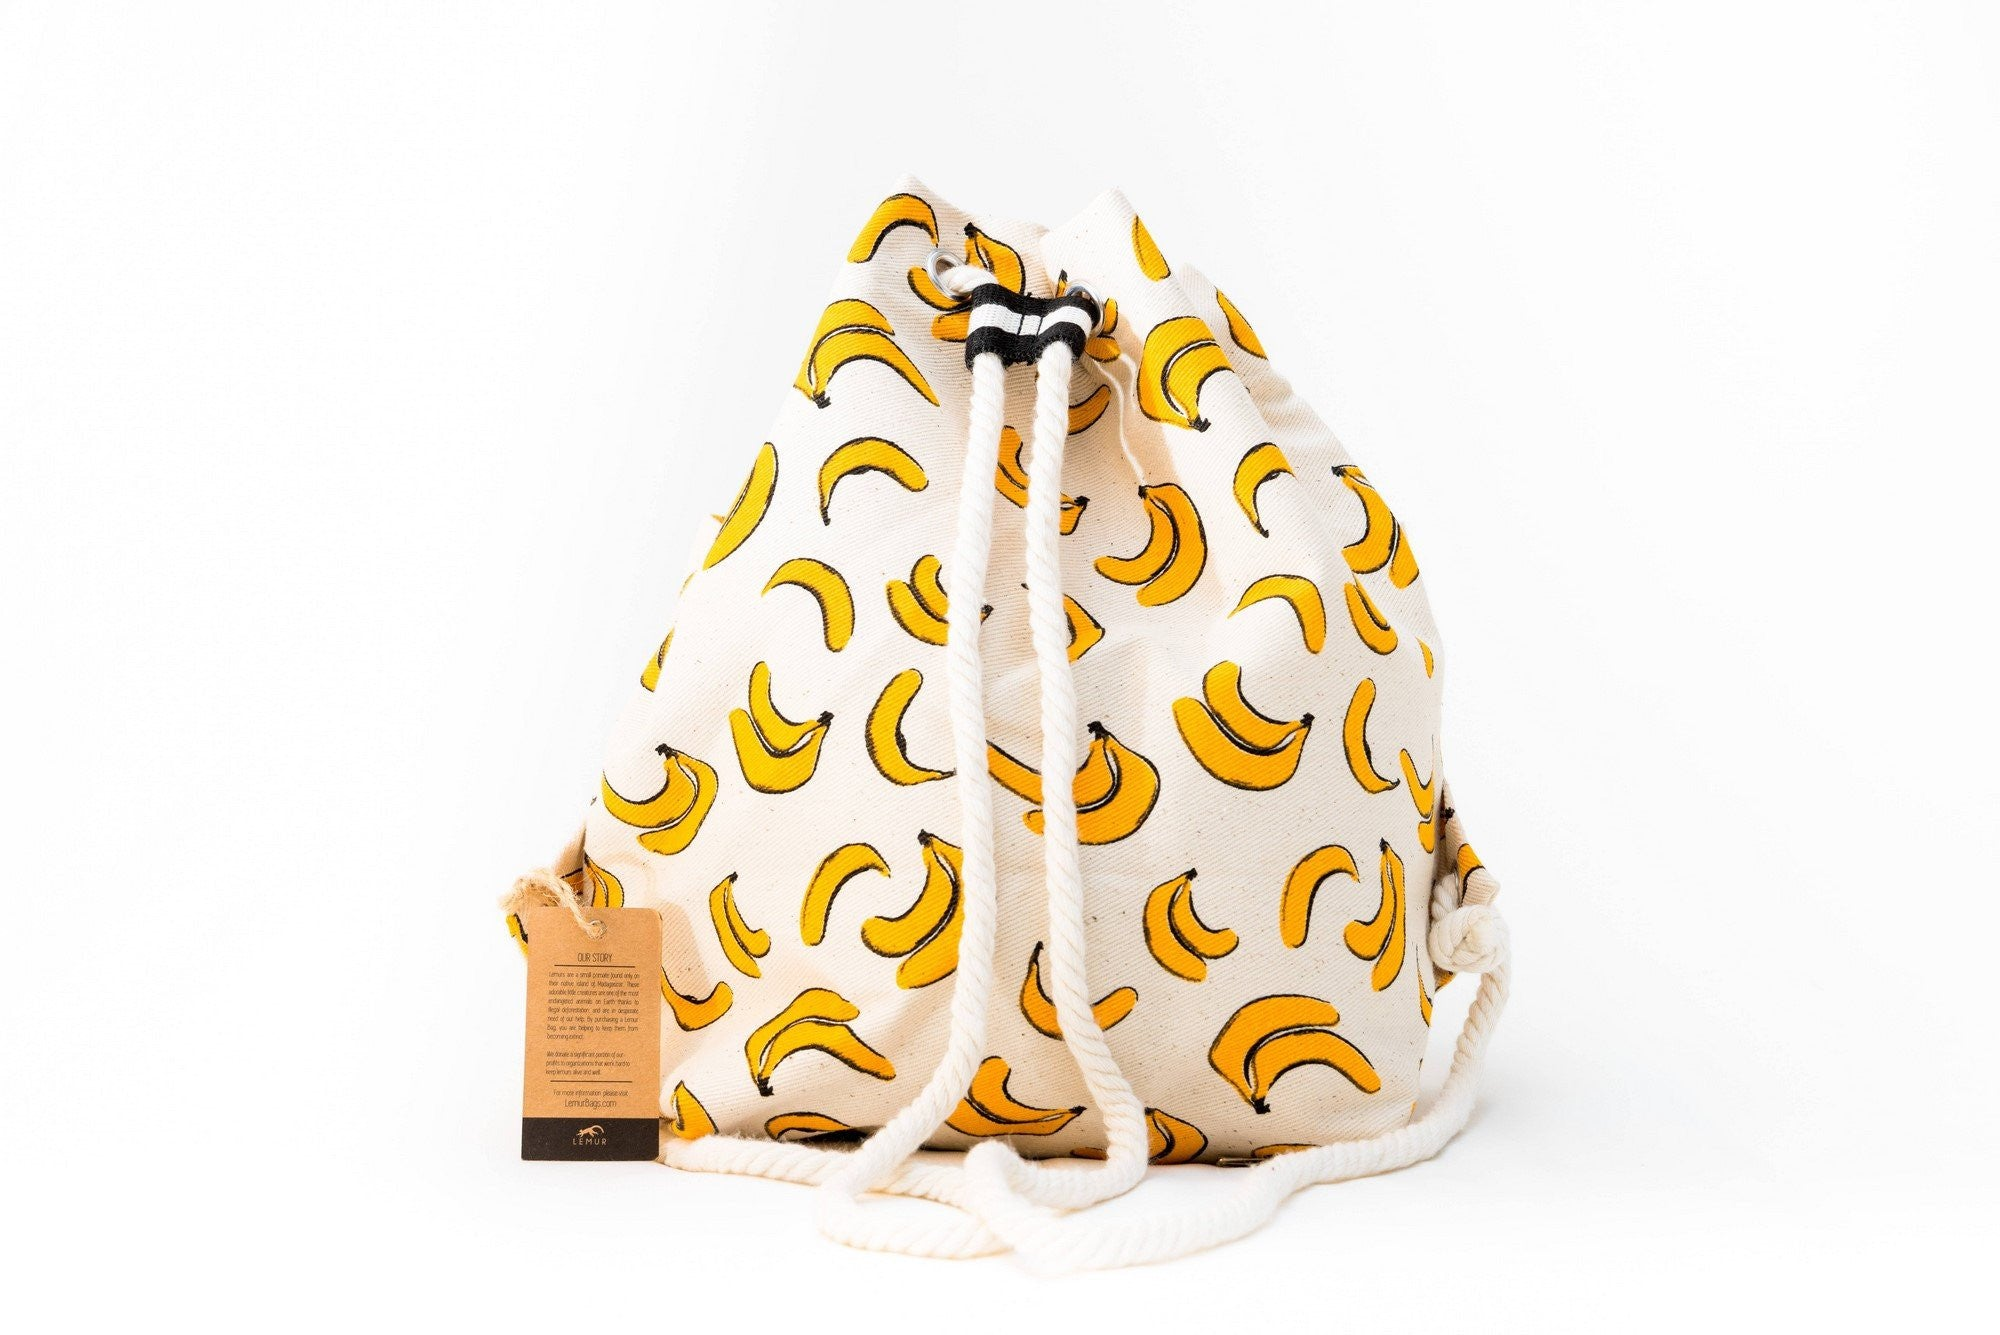 Canvas Travel Daypack - Canvas Travel Daypack - Rope Drawstring Cinchsack By Lemur Bags (Bananas)